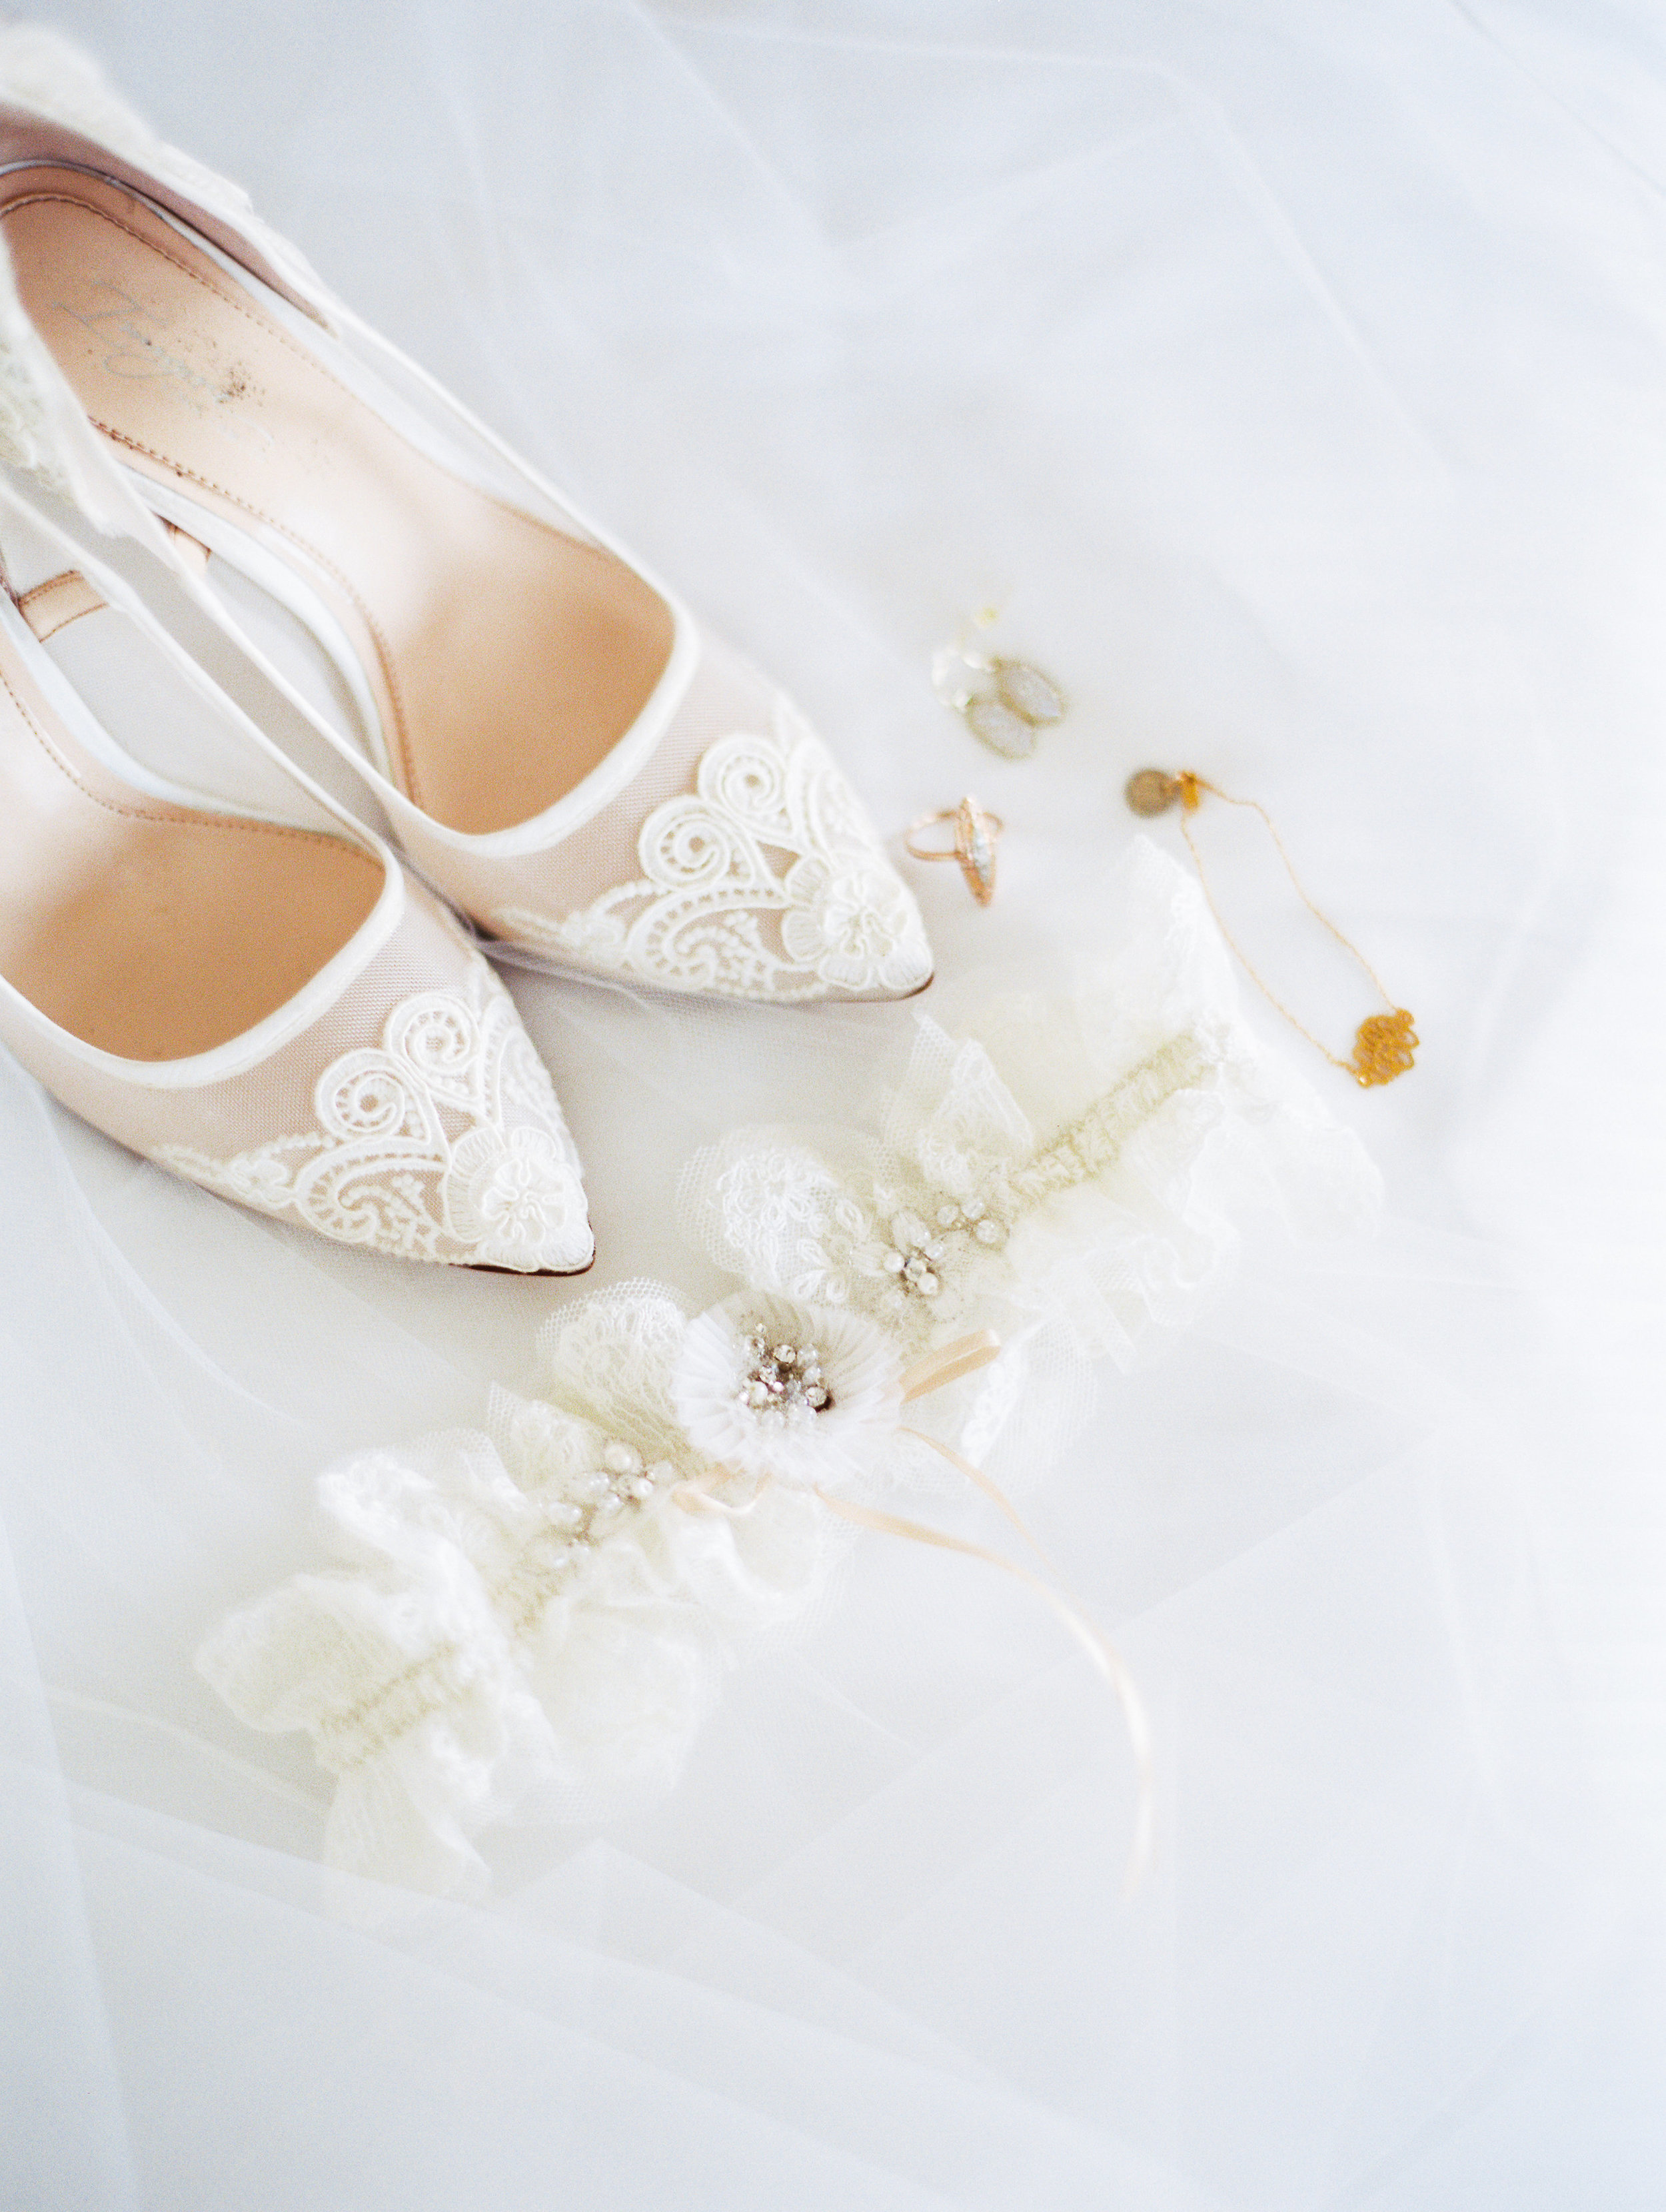 The bride's delicate accessories complimented her flowing lace and tulle wedding gown.